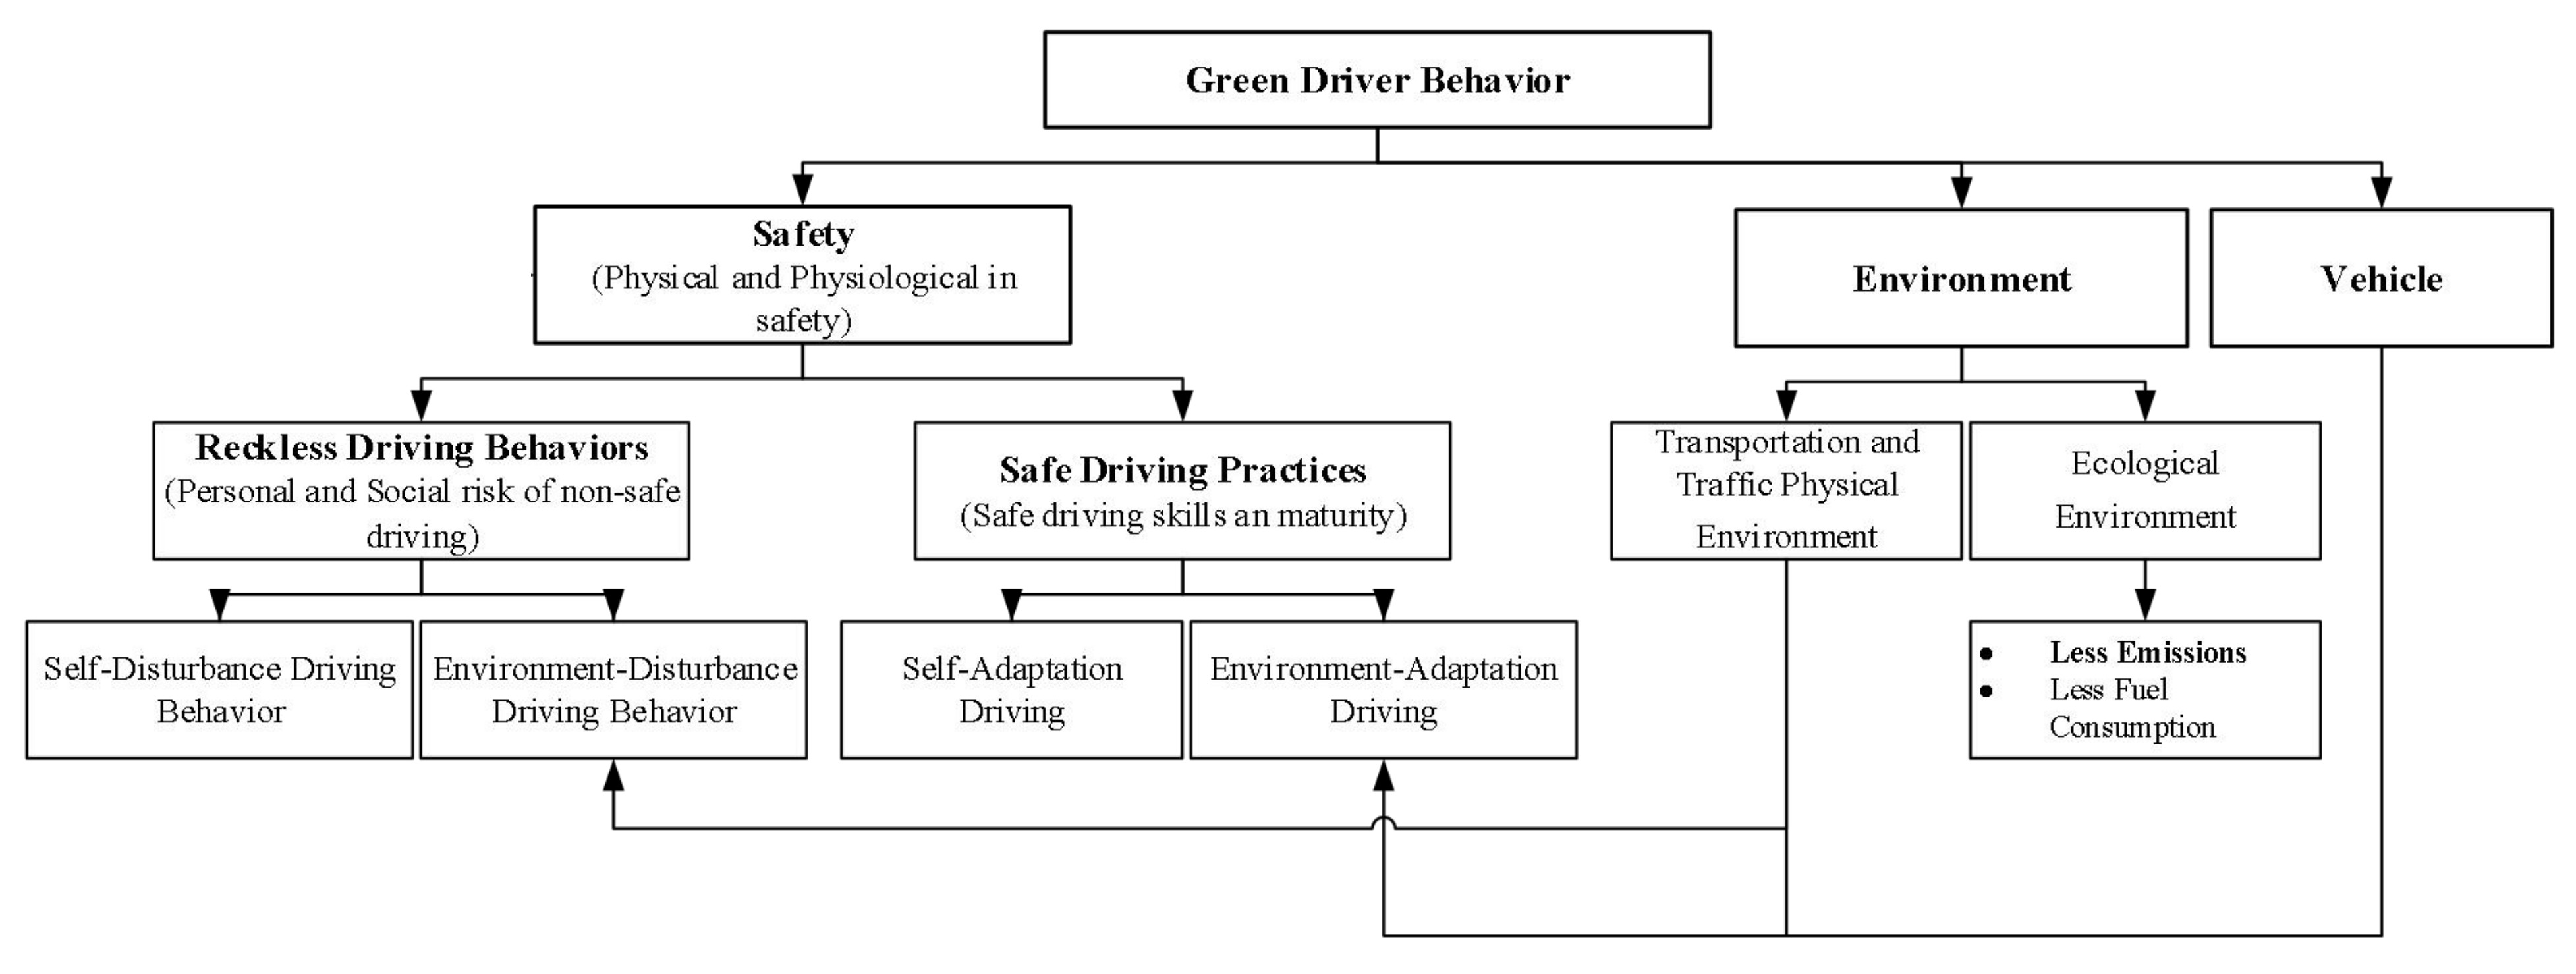 Sustainability | Free Full-Text | Green Driver: Travel